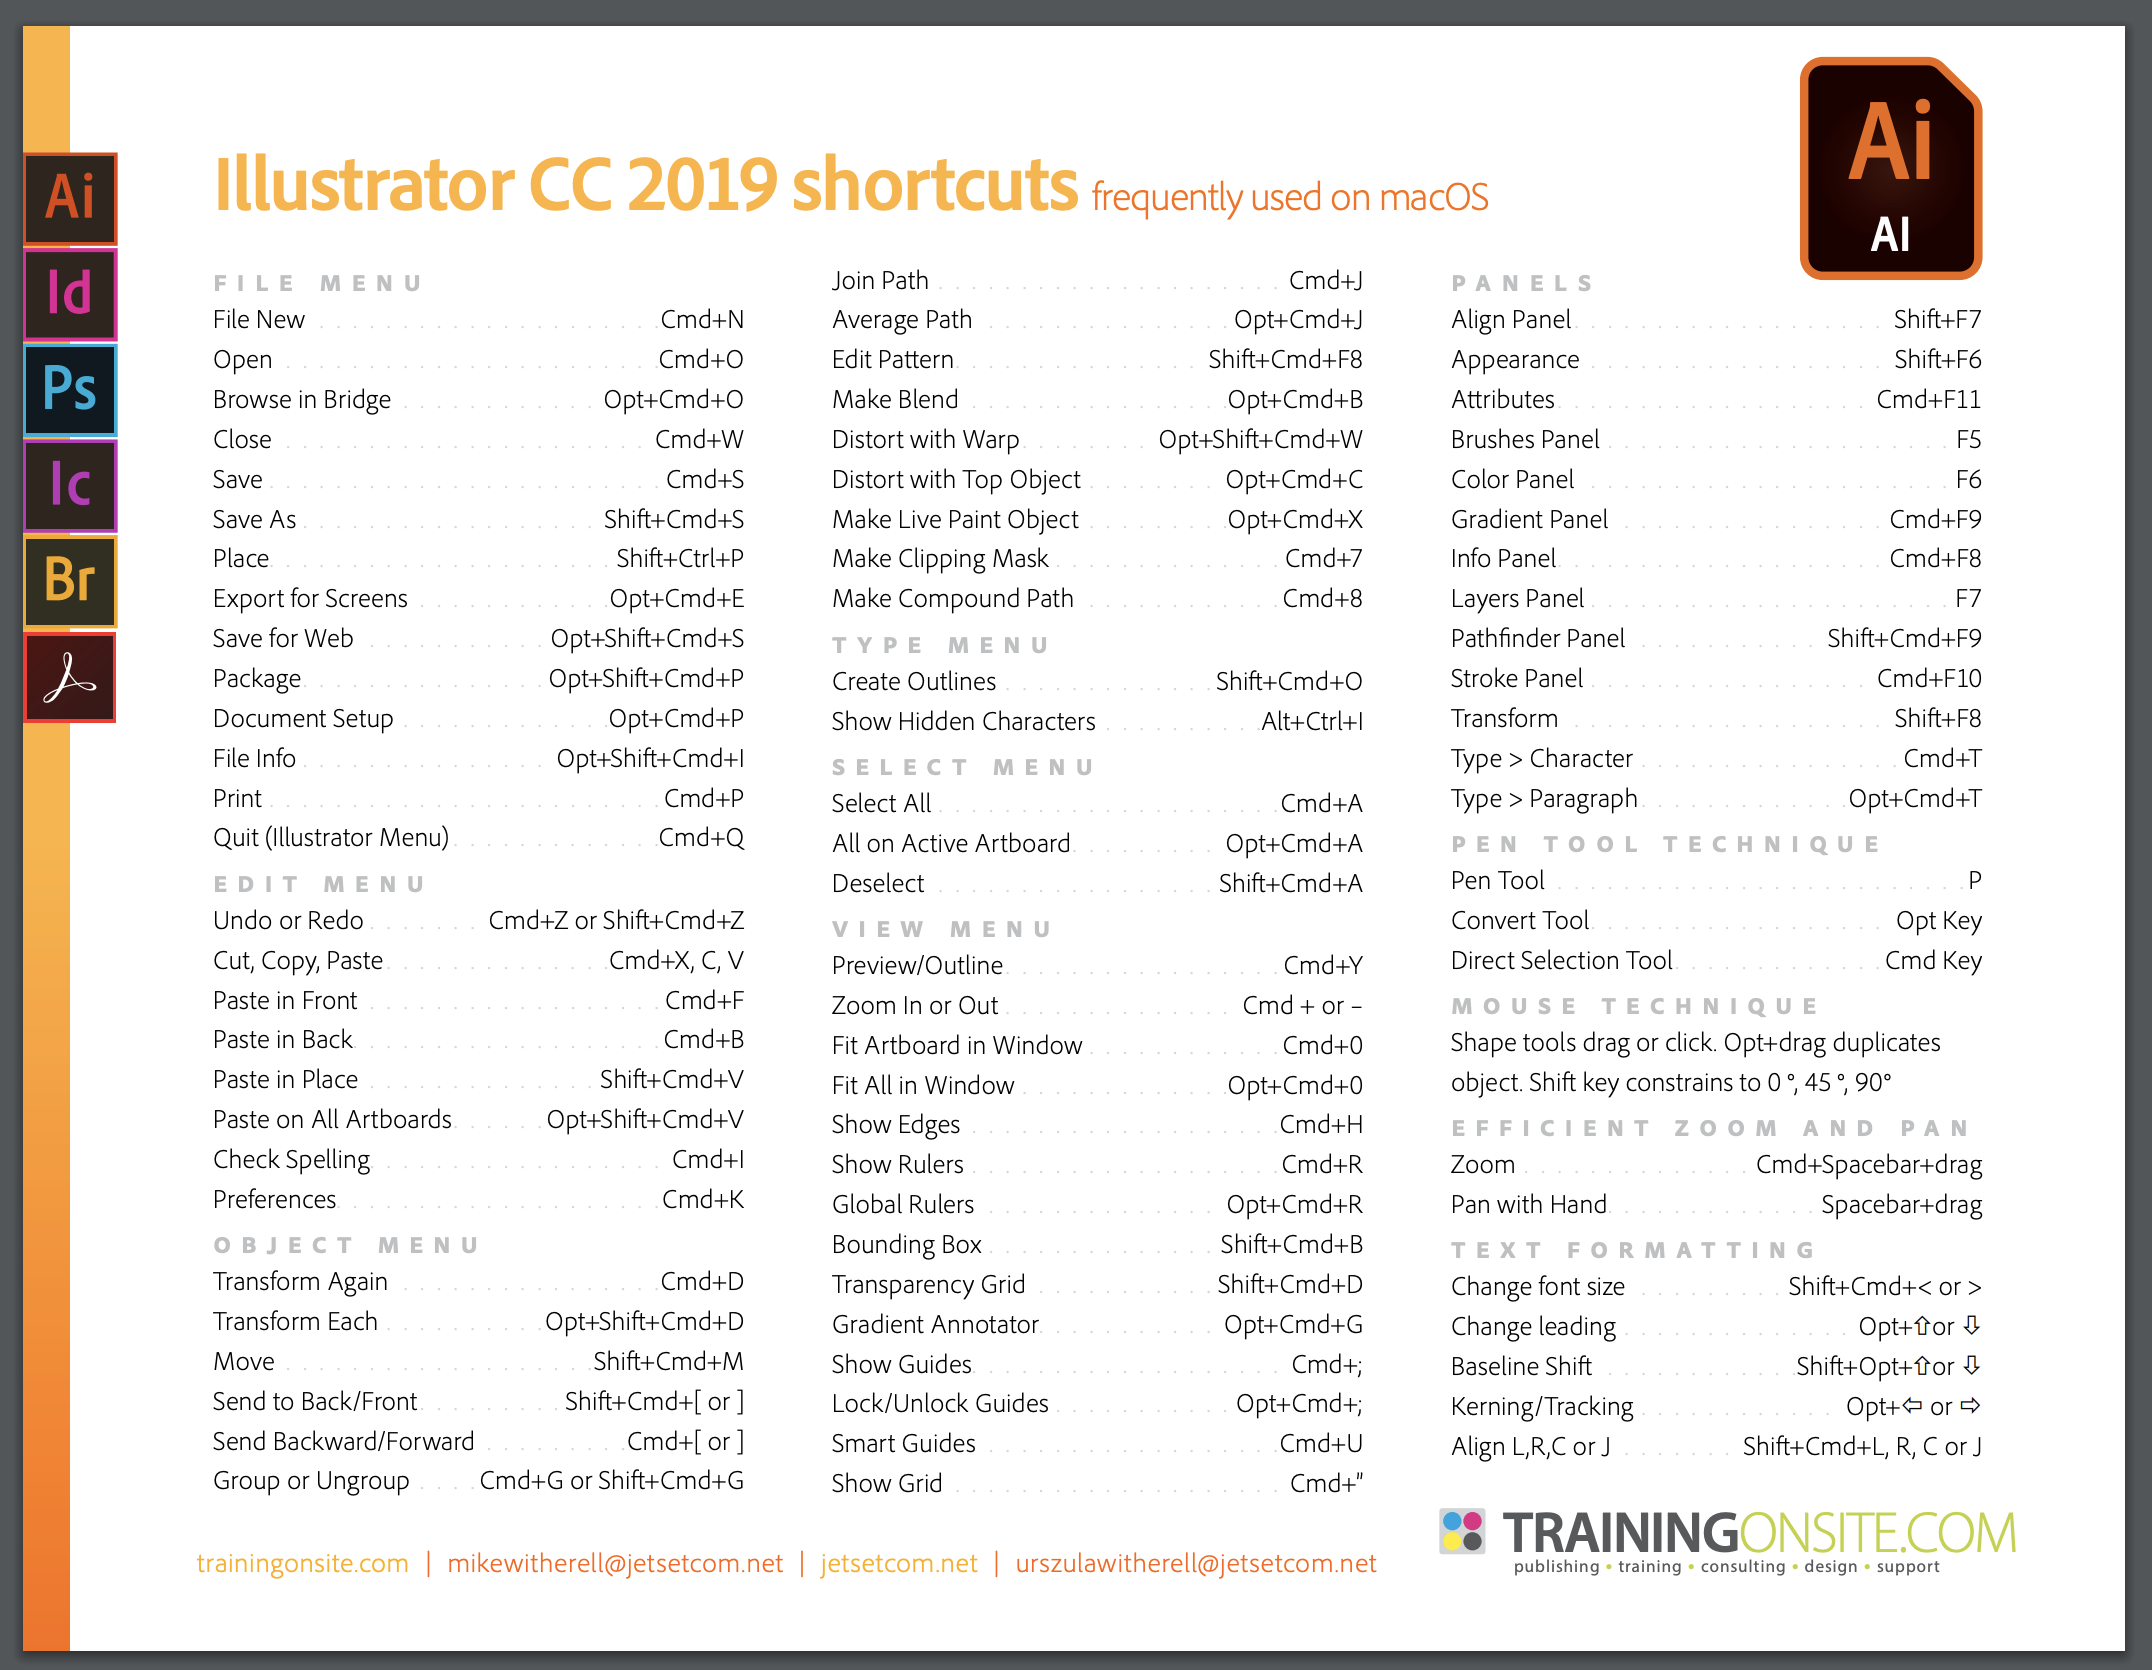 Illustrator CC 2019 - Keyboard Shortcuts